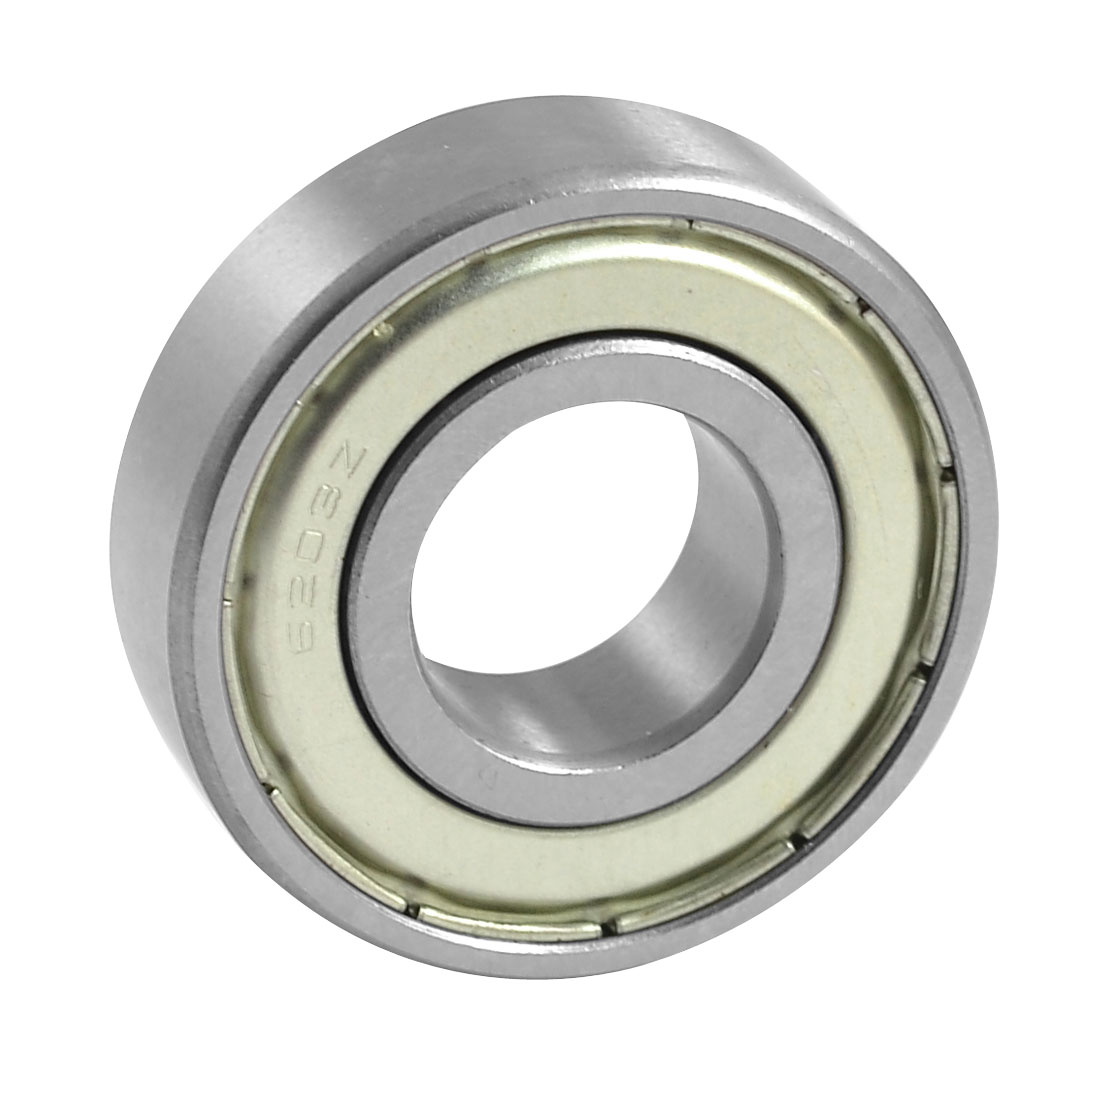 6203Z 17mm x 40mm x 12mm Metal Shielded Deep Groove Ball Bearing